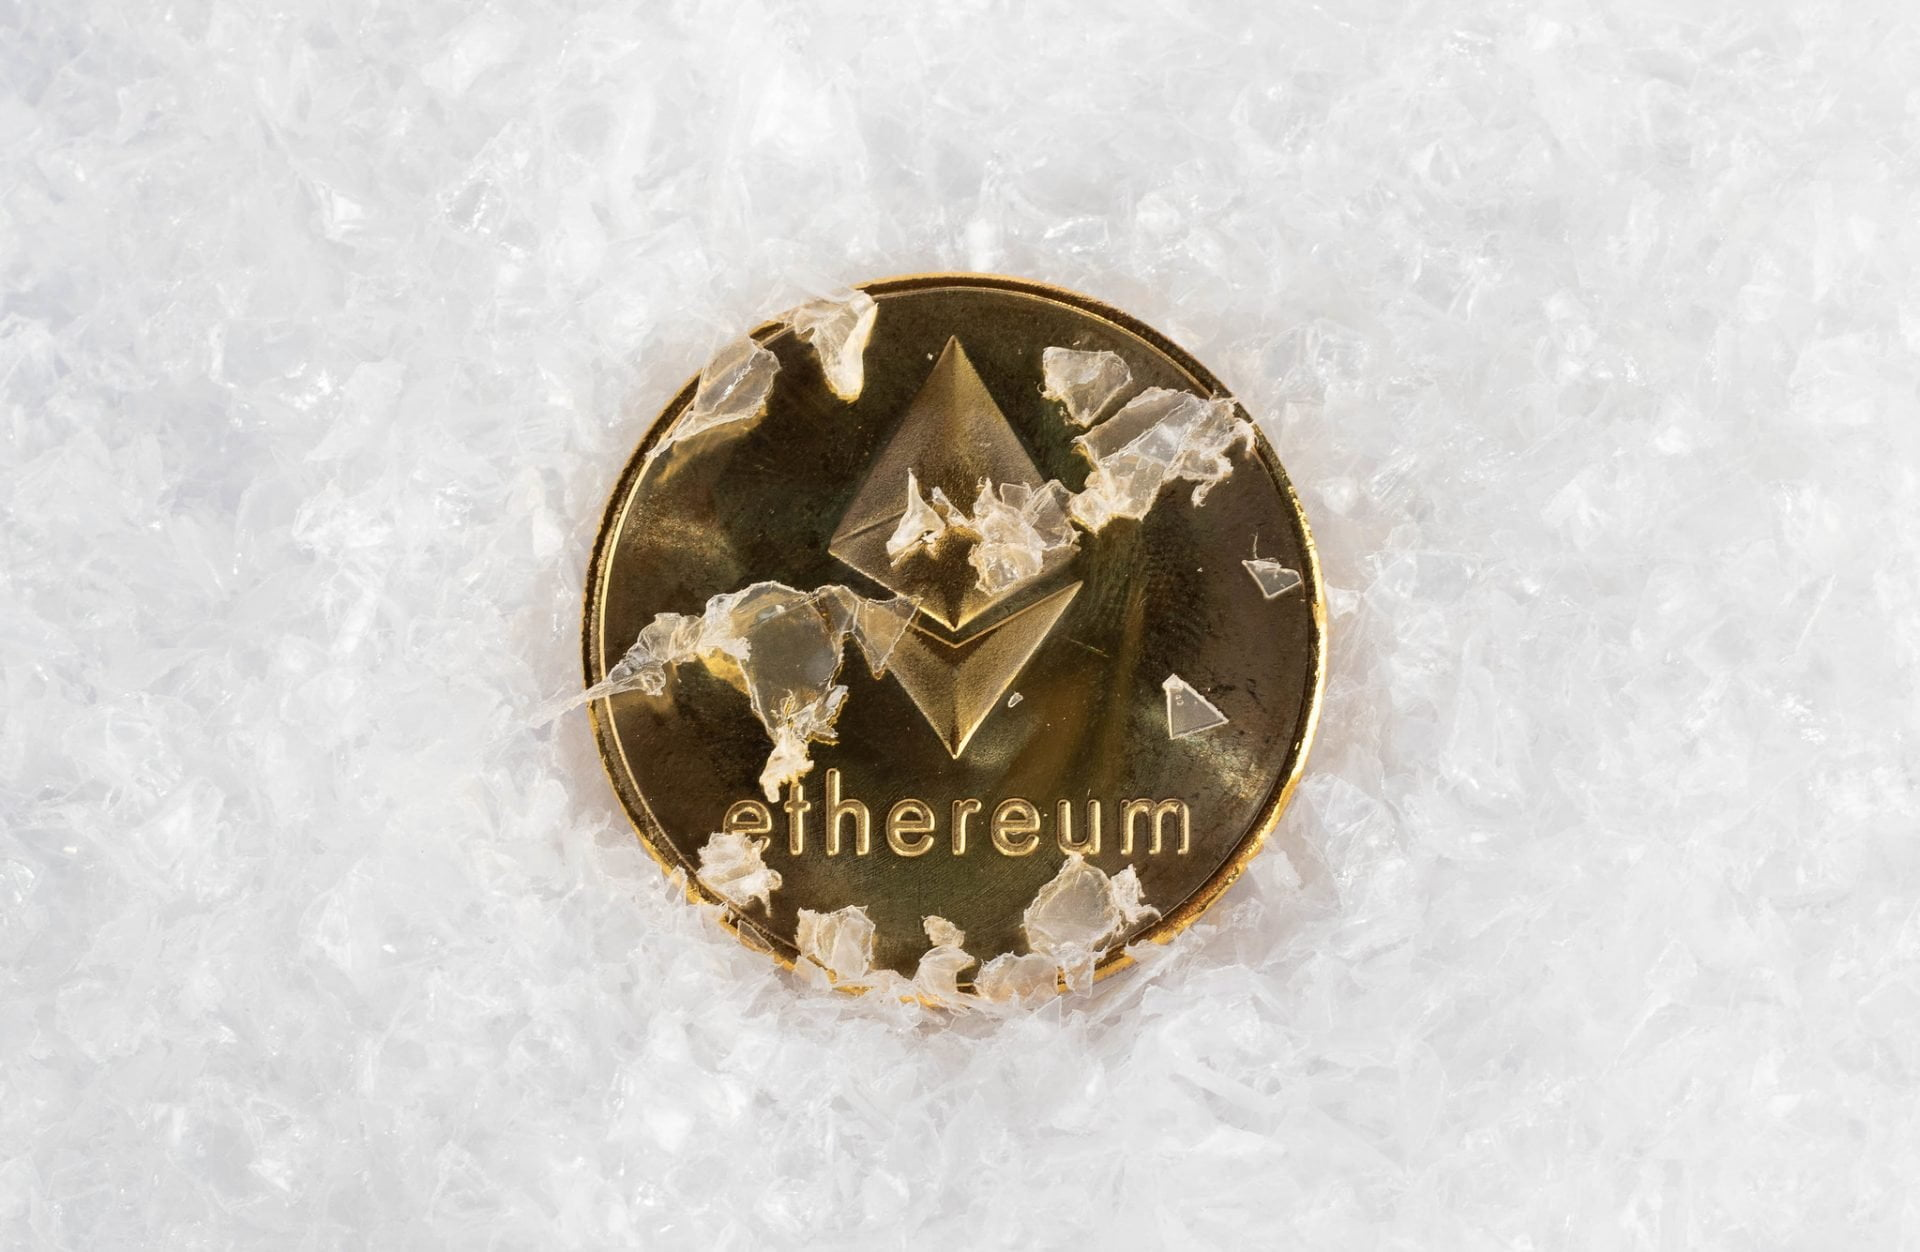 Vitalik Buterin Mentions Ethereum Gas Limit Shift as Tether Ties Up ETH 14